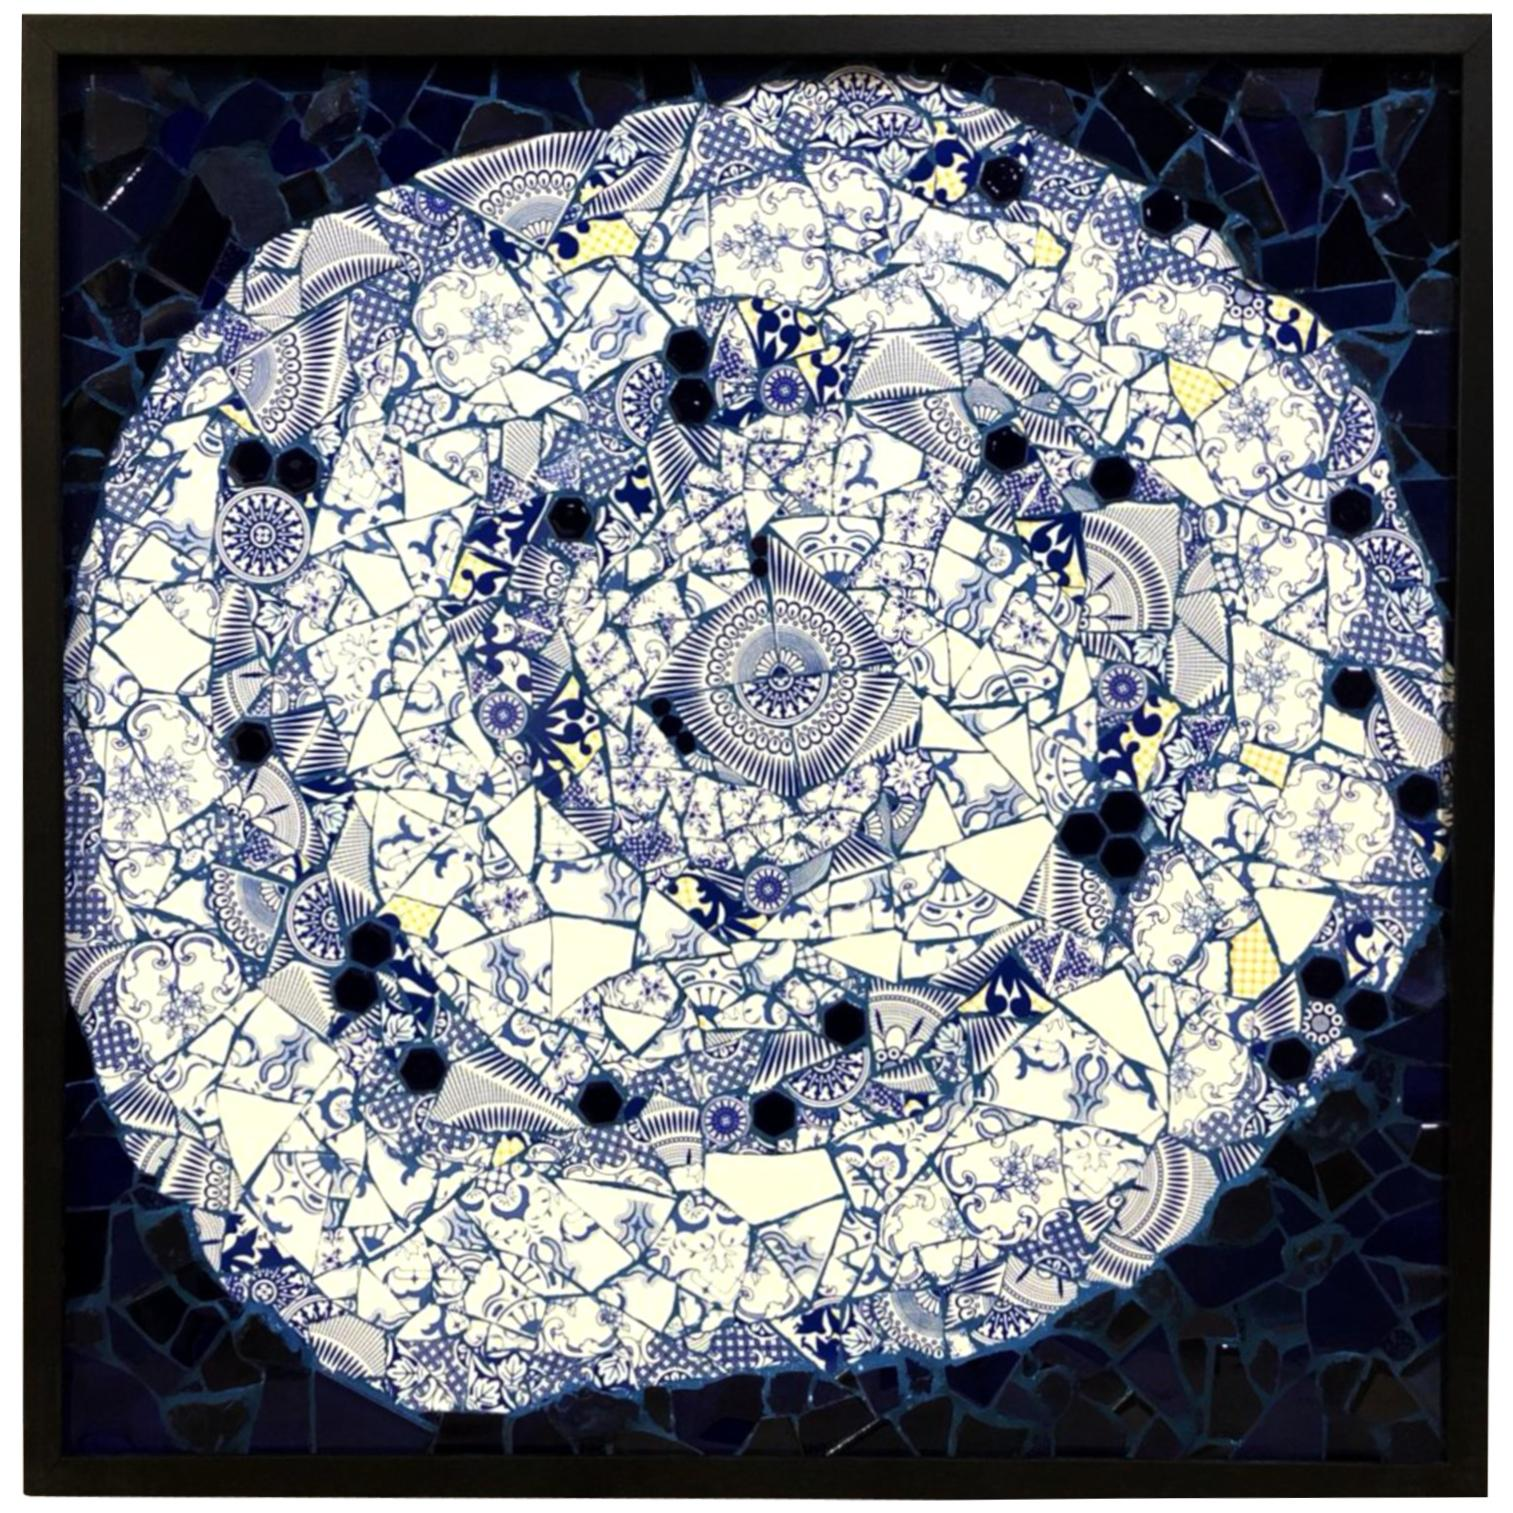 One of a Kind Contemporary Spiral Mosaic 01 by Brazilian artist Mariana Lloyd